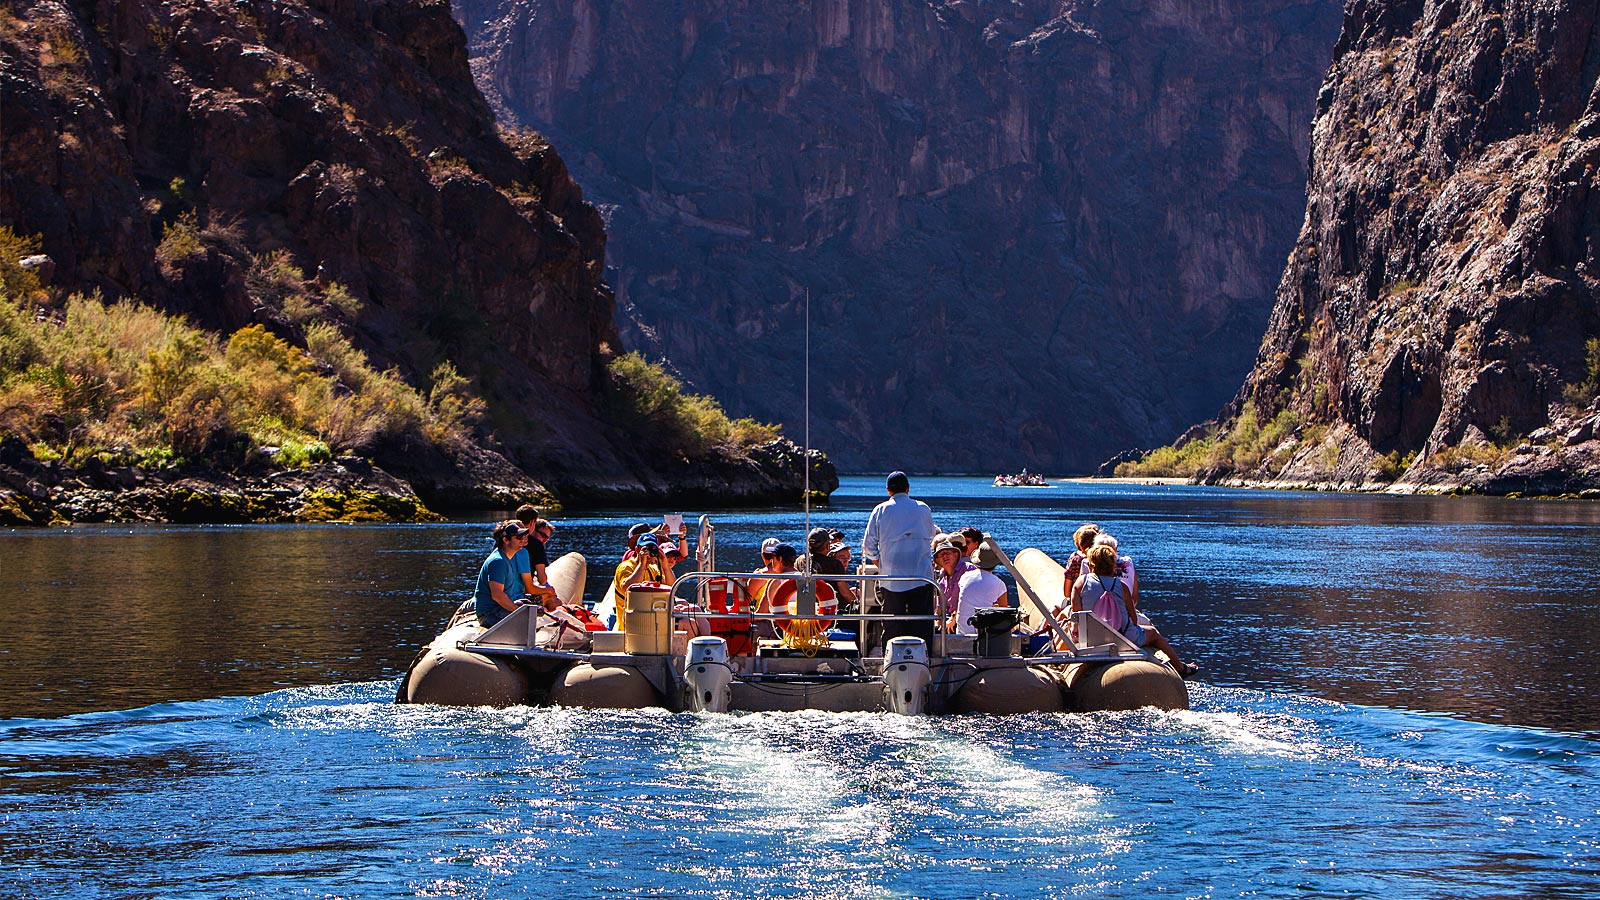 Black Canyon River Rafting Tour with Grand Canyon Helicopter Flight – $499